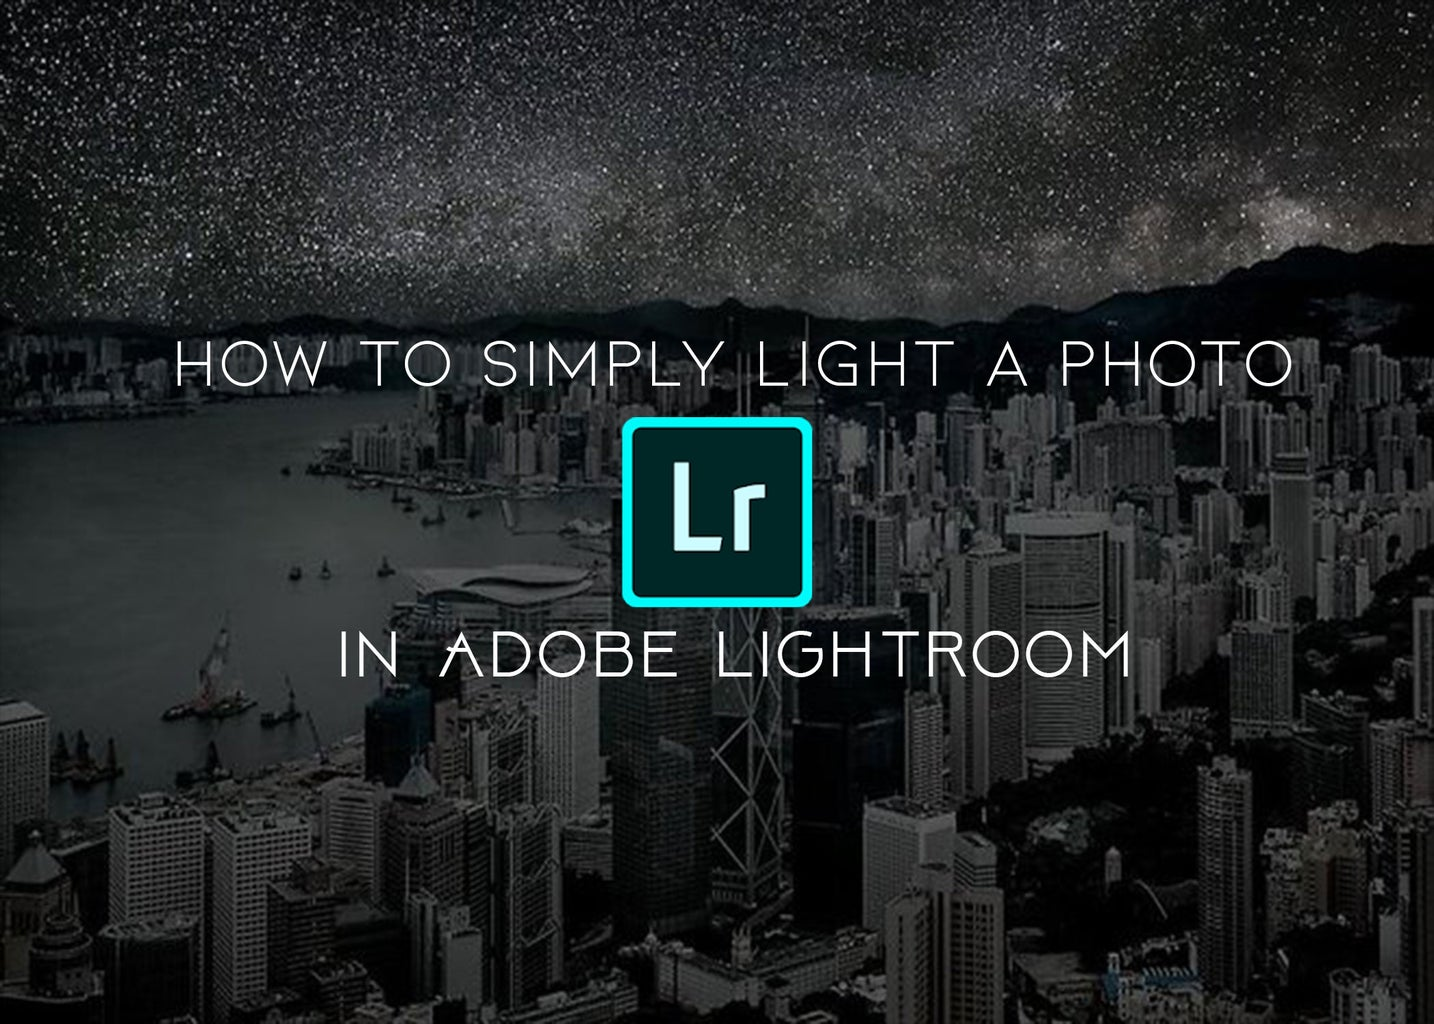 How to Simply Light a Photo in Adobe Lightroom